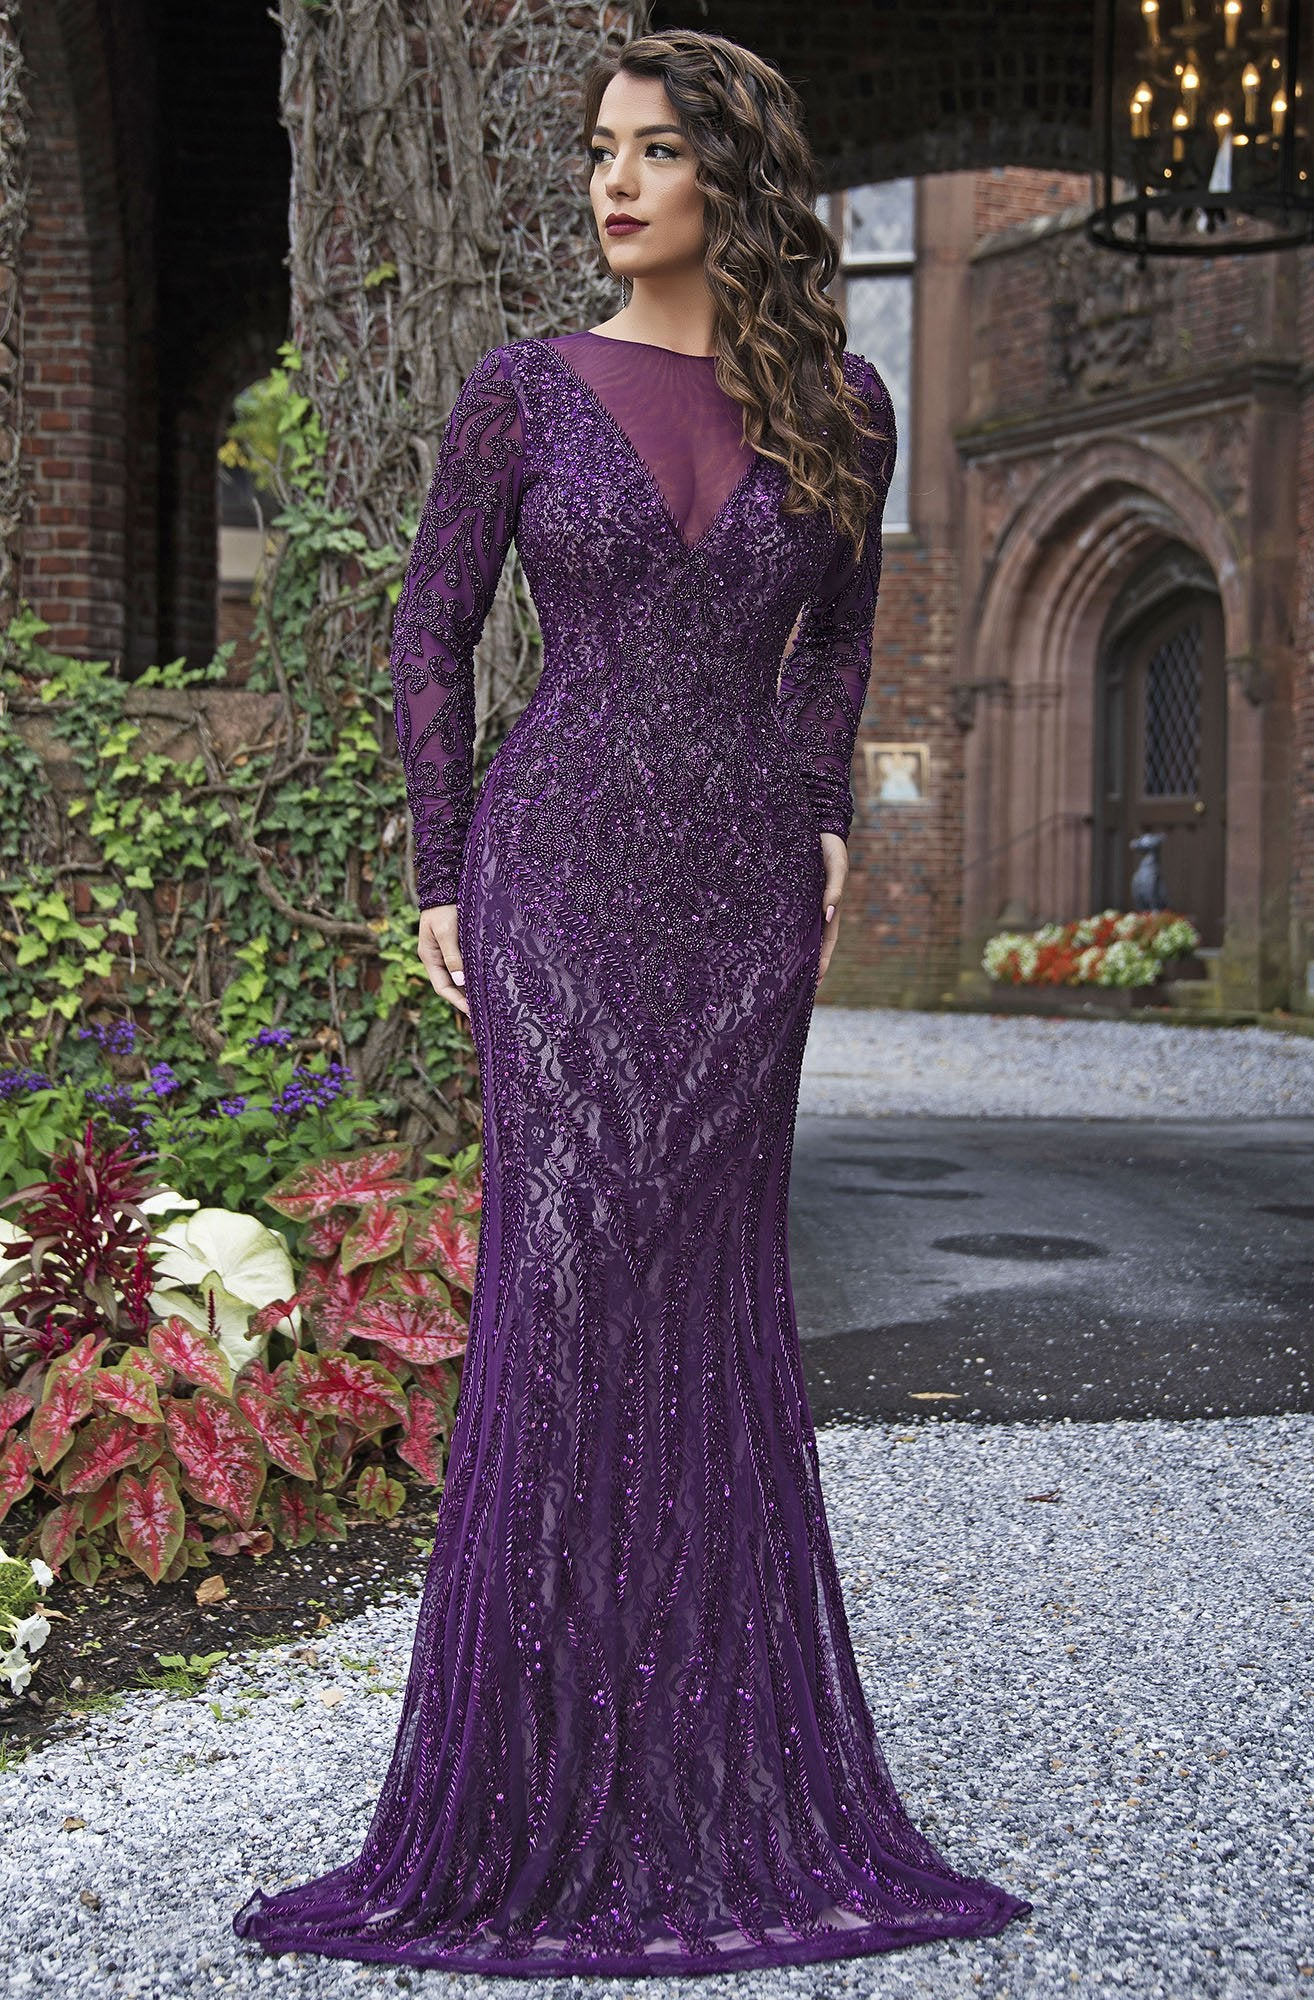 Primavera Couture - 3192 Sequined Long Sleeves Sheath Gown In Purple